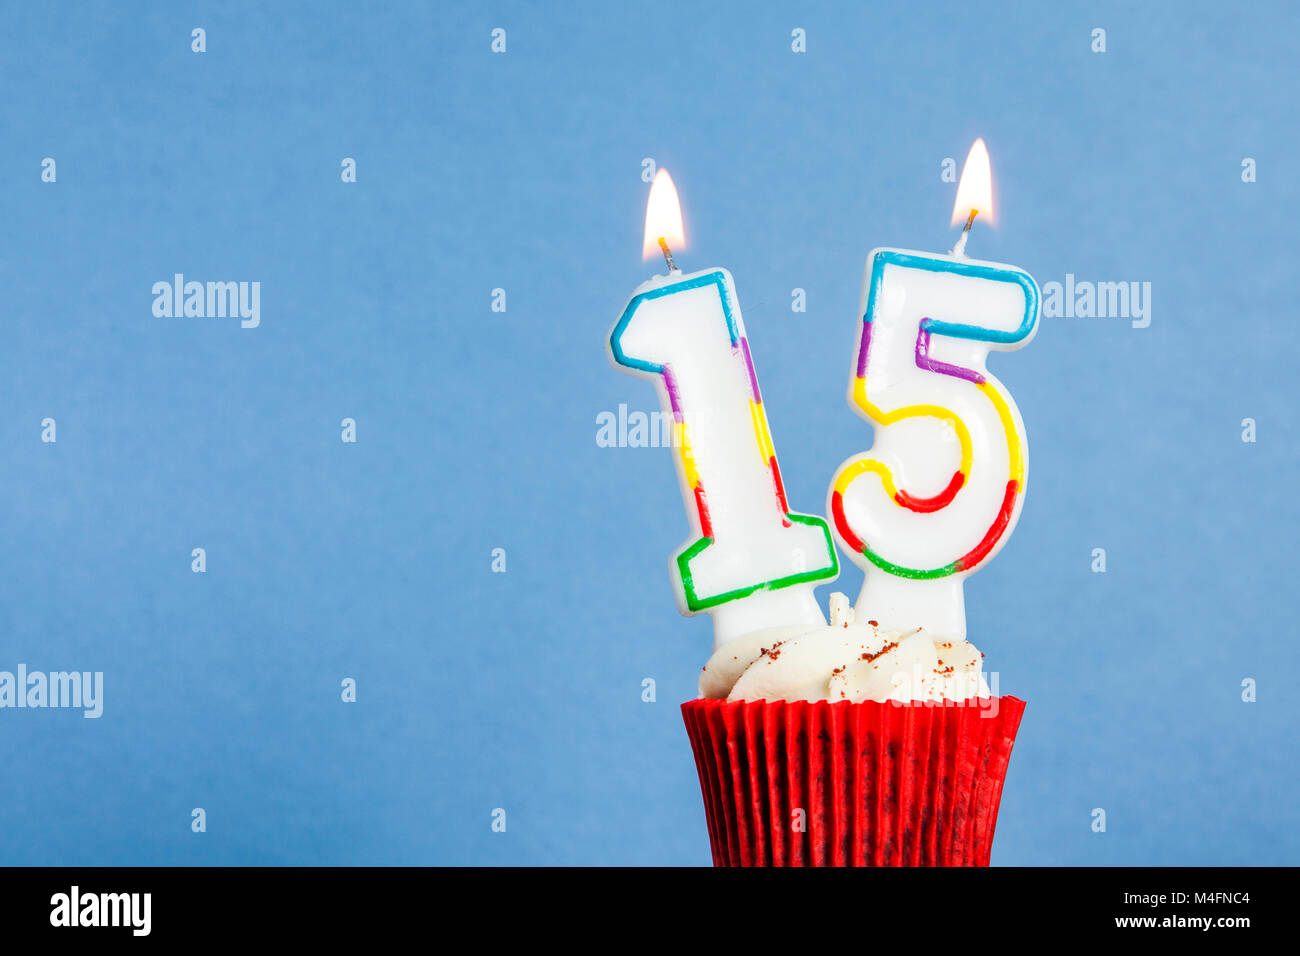 Number 15 Birthday Candle In A Cupcake Against Blue Background